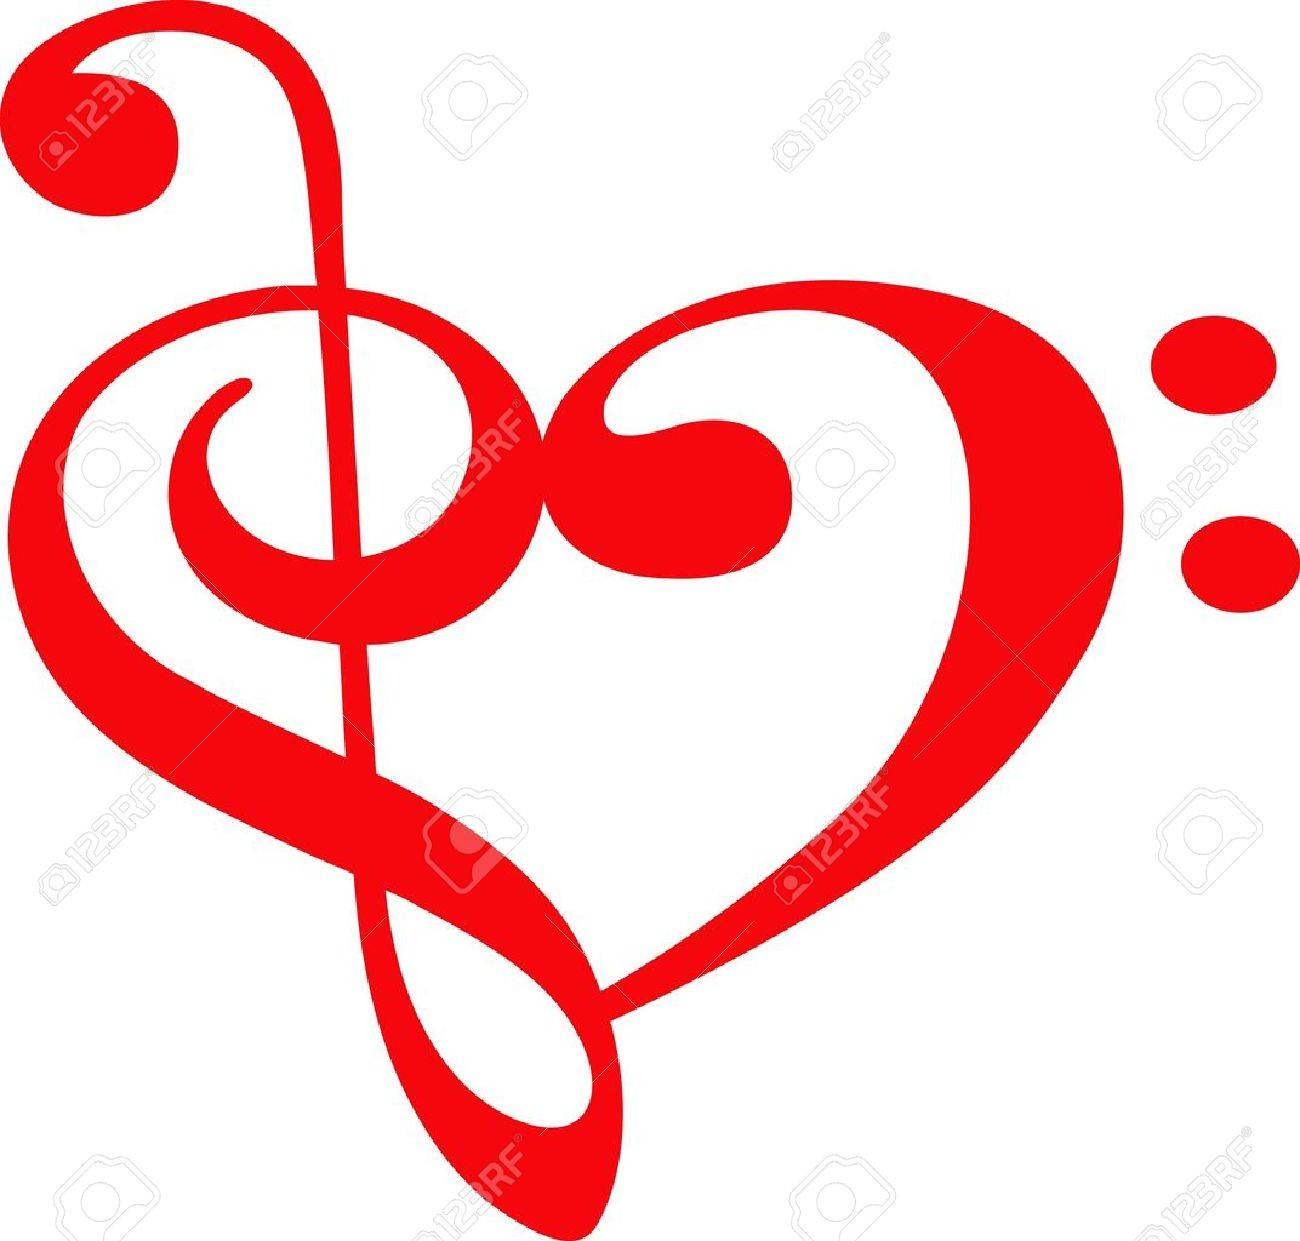 Music lovers will like this special heart for a valentine. - 45936961